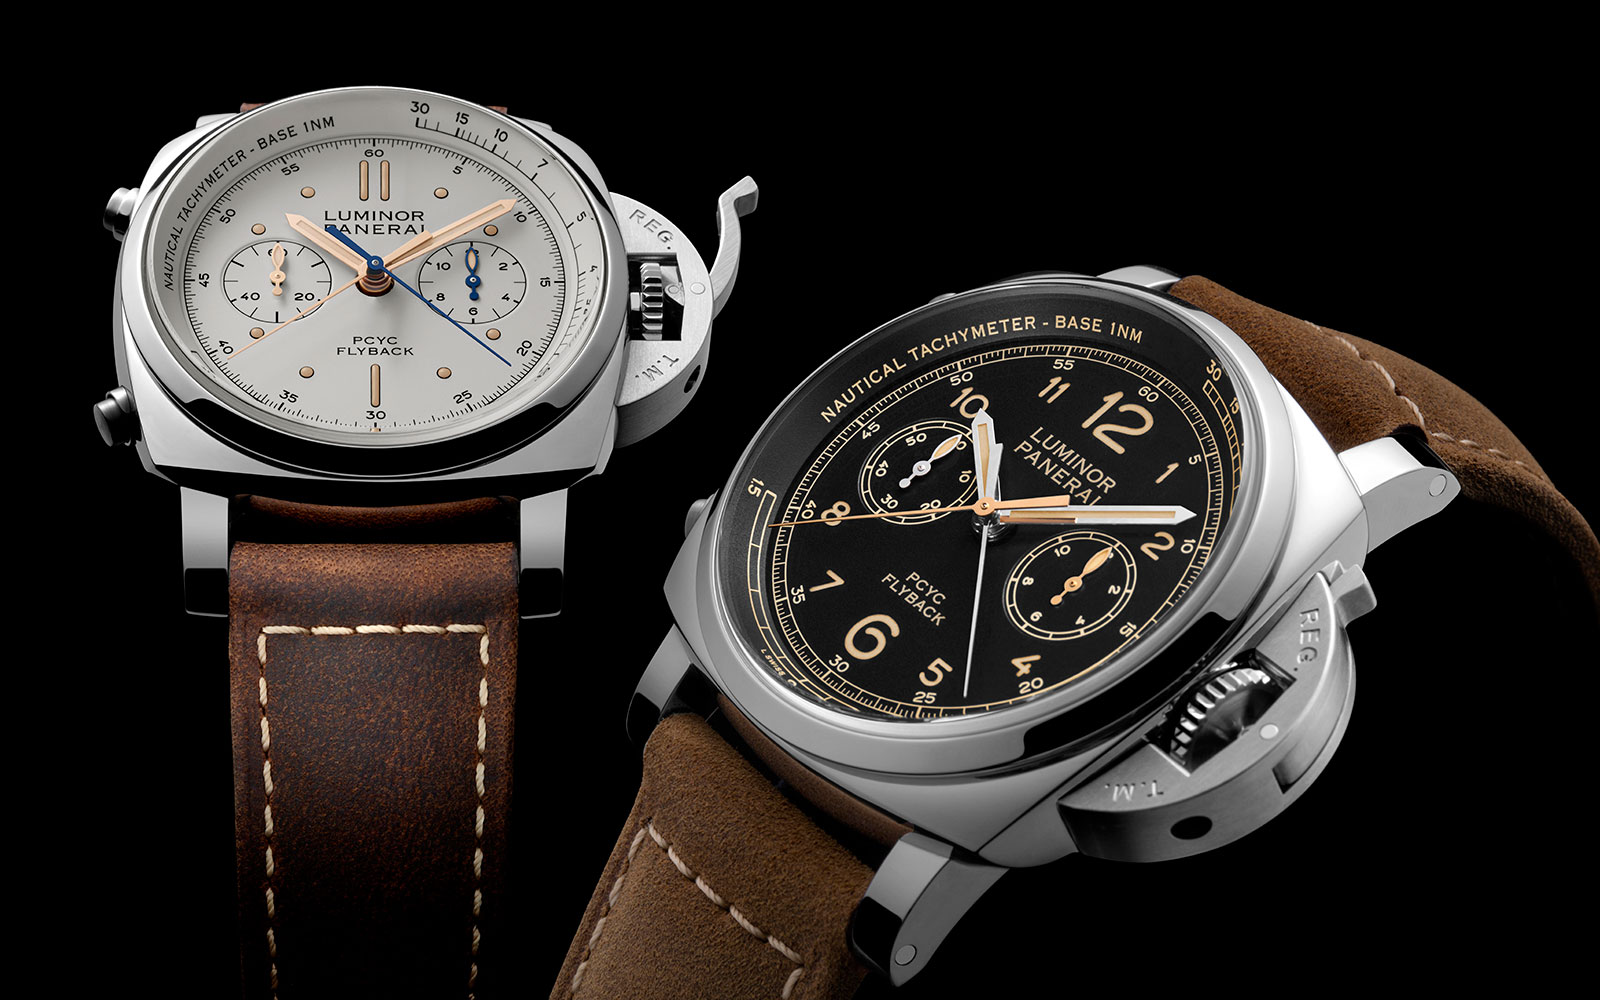 Panerai Luminor 1950 PCYC Chrono Flyback PAM653 PAM654